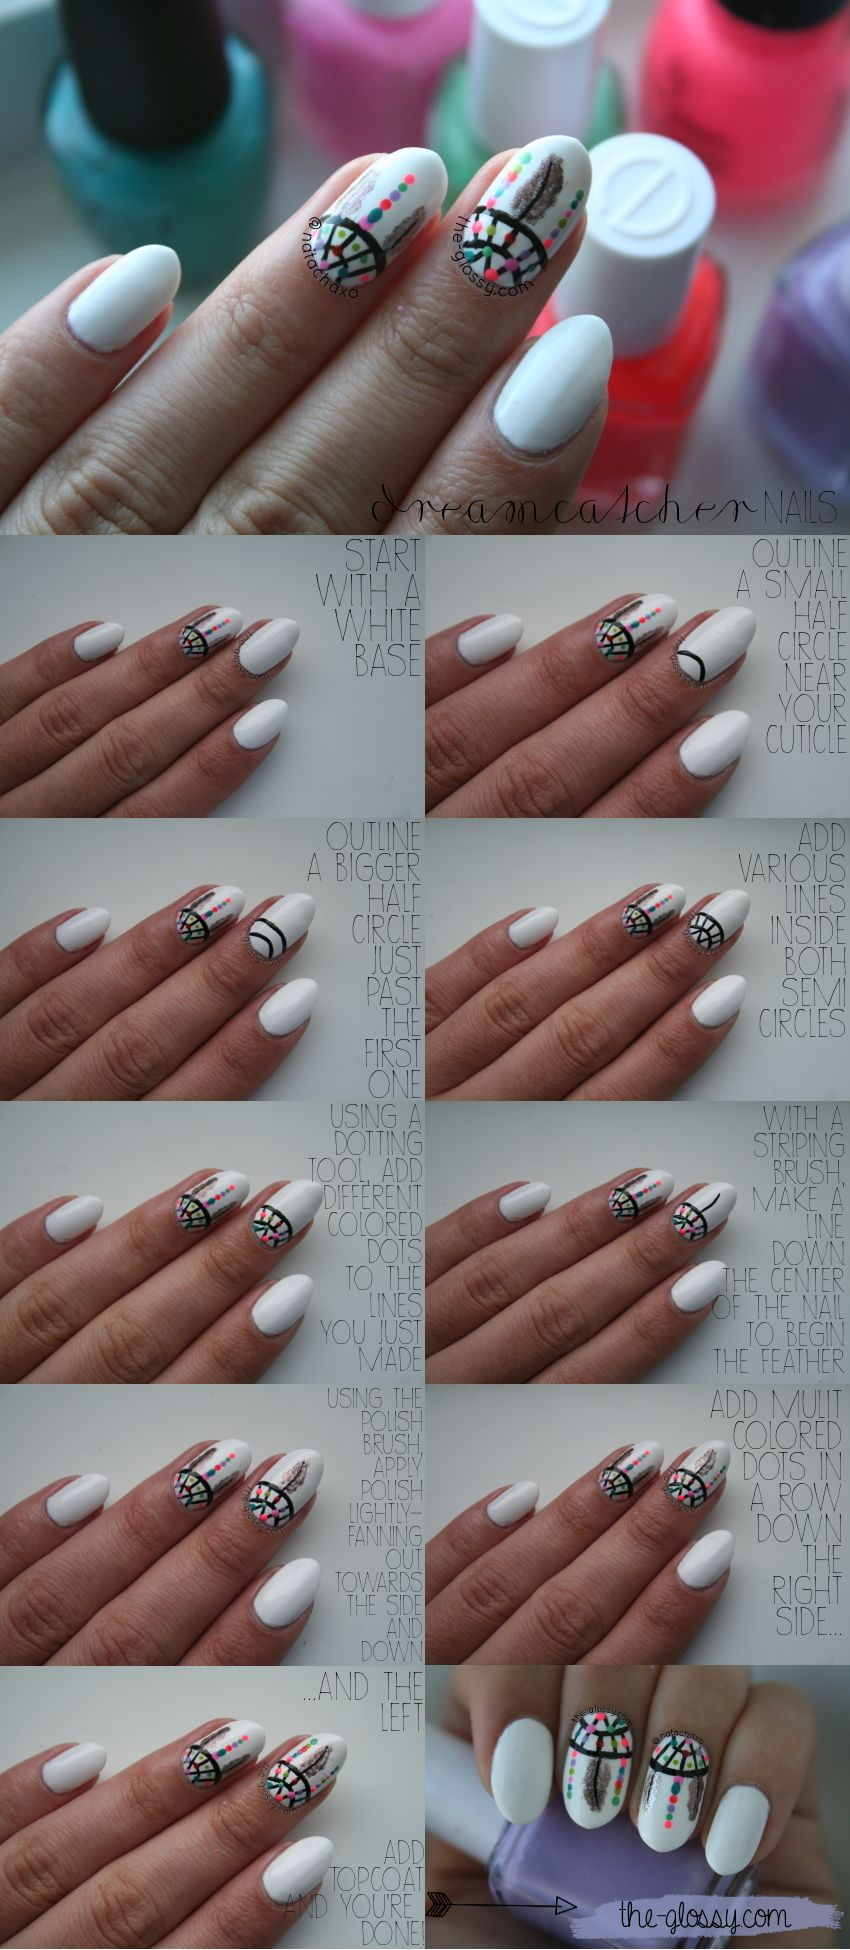 Really Cool Dream Catcher Nail Art I Have A Feeling This